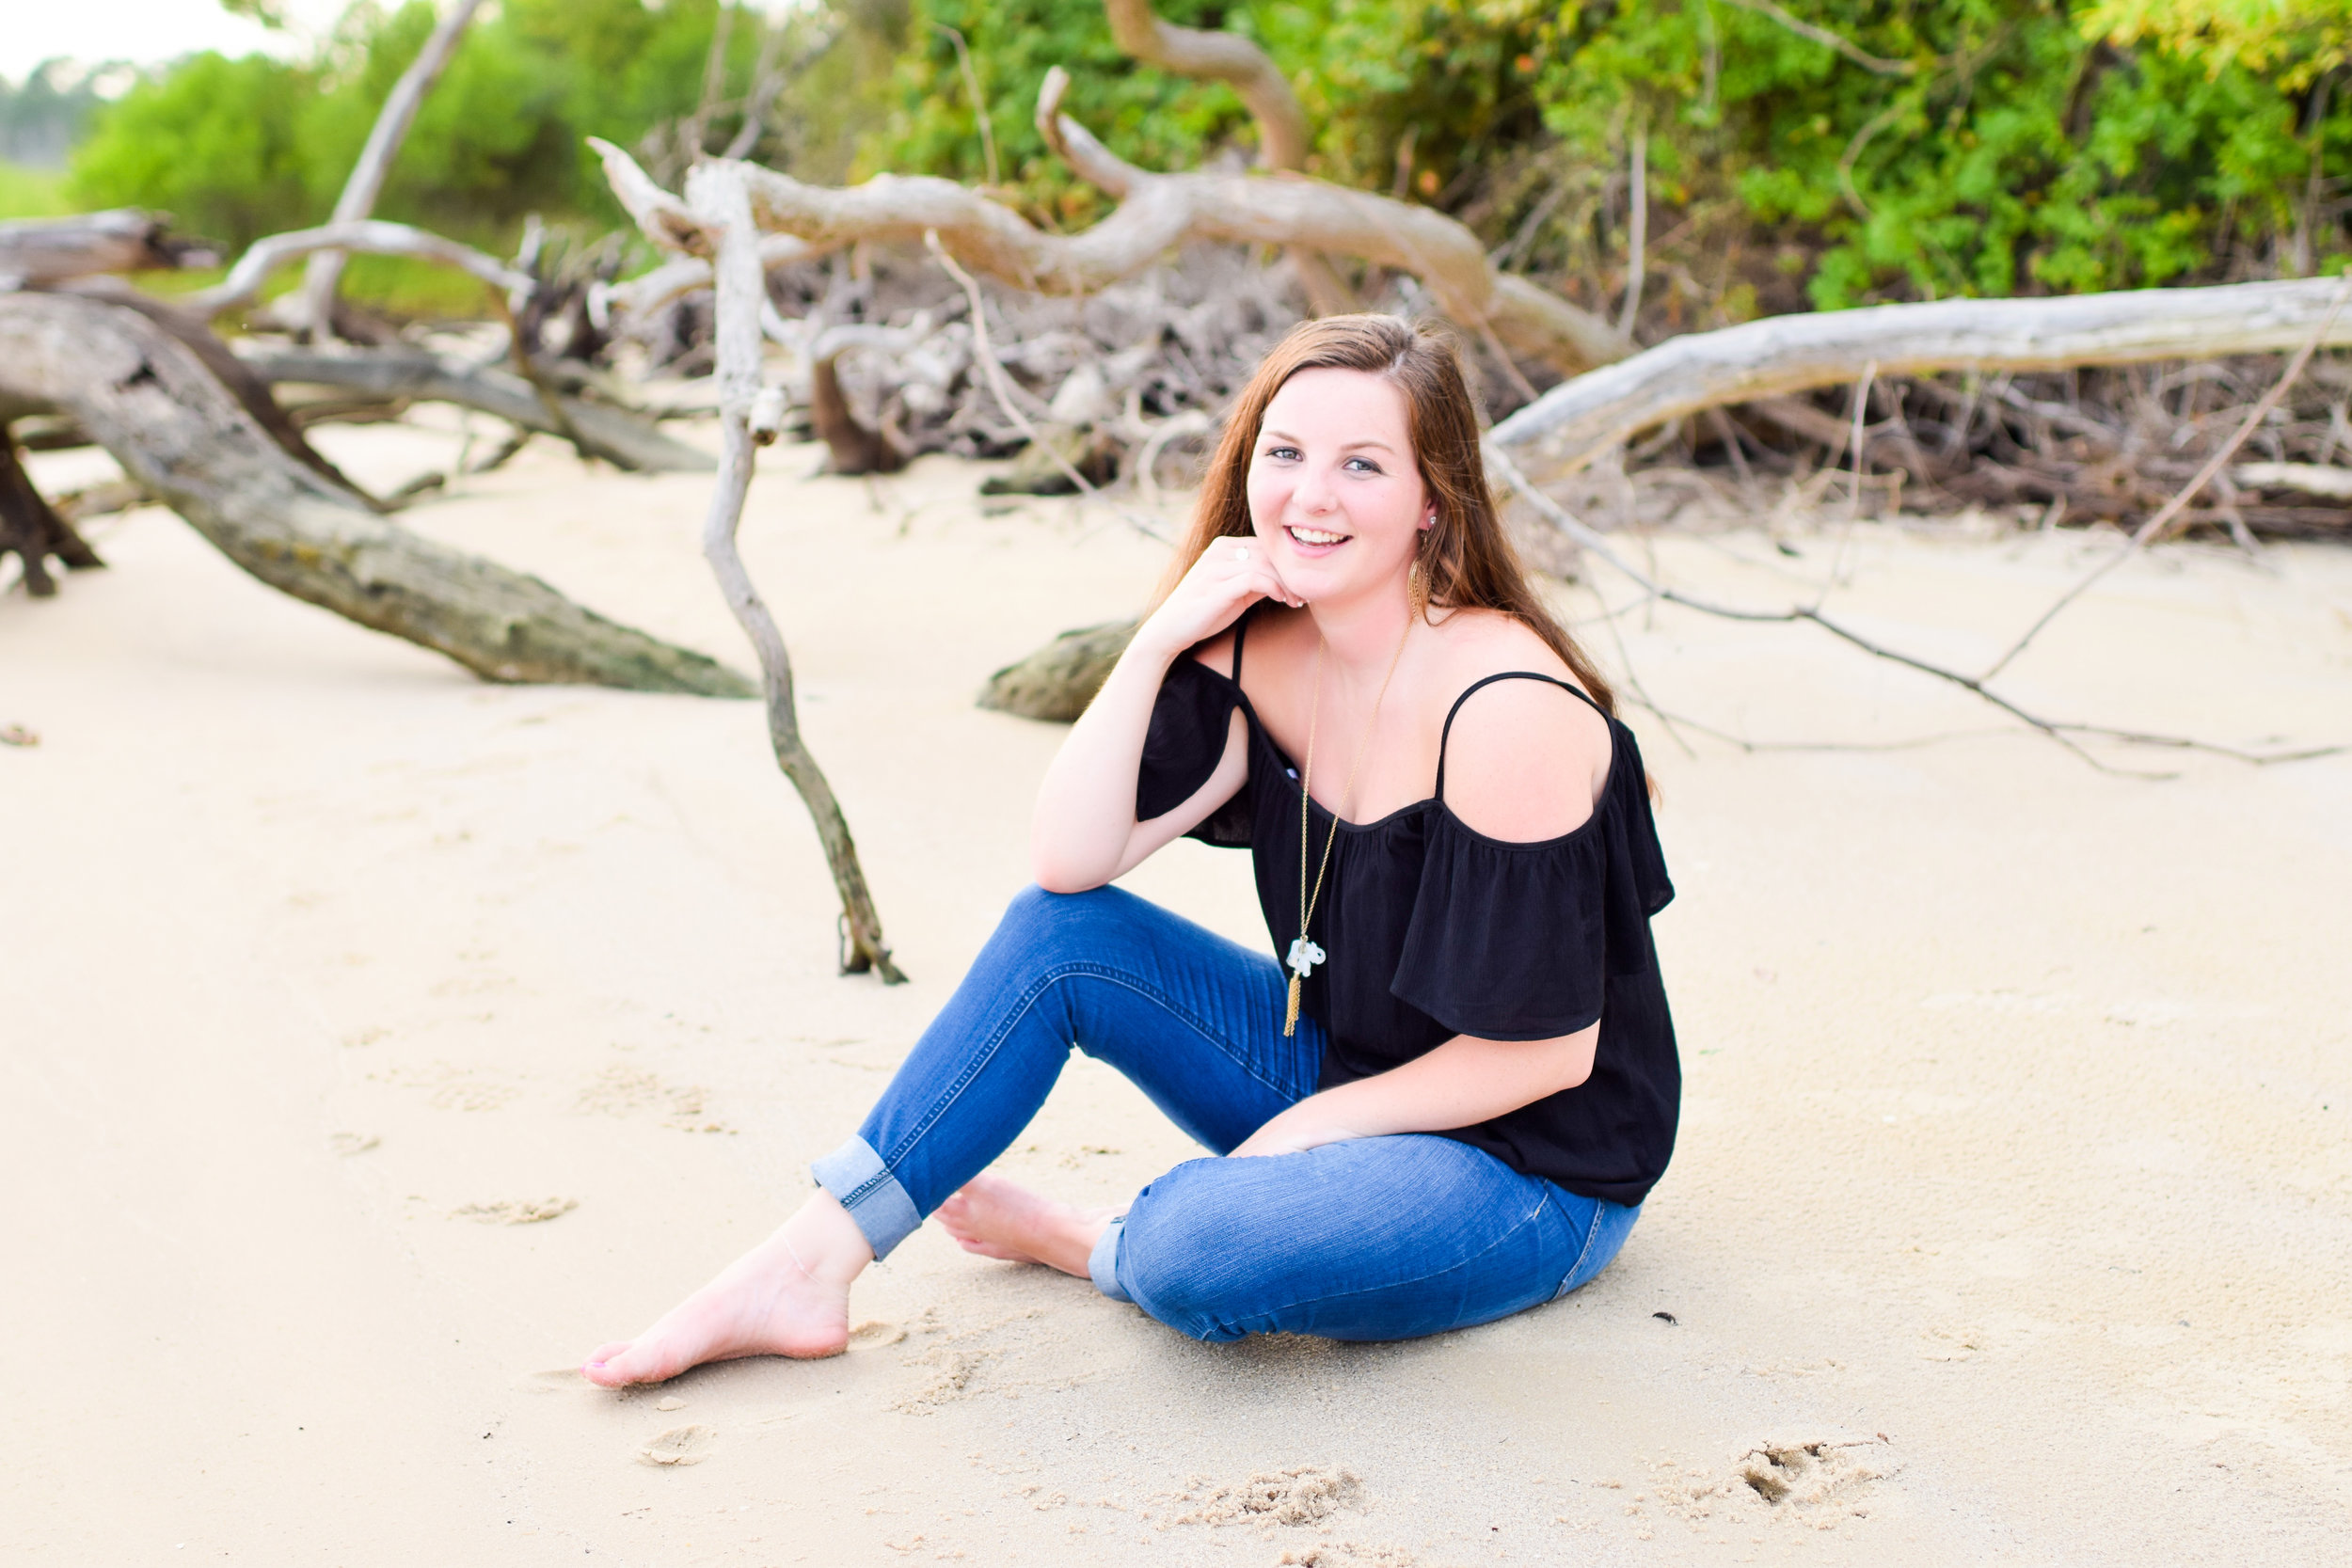 When Abby Hudson Photography comes to mind all I think about is the absolute BEST! What a fun, energetic, out going photographer ever. I HIGHLY recommend her for any kind of pictures you have in mind. Just hands down the best! Cameron